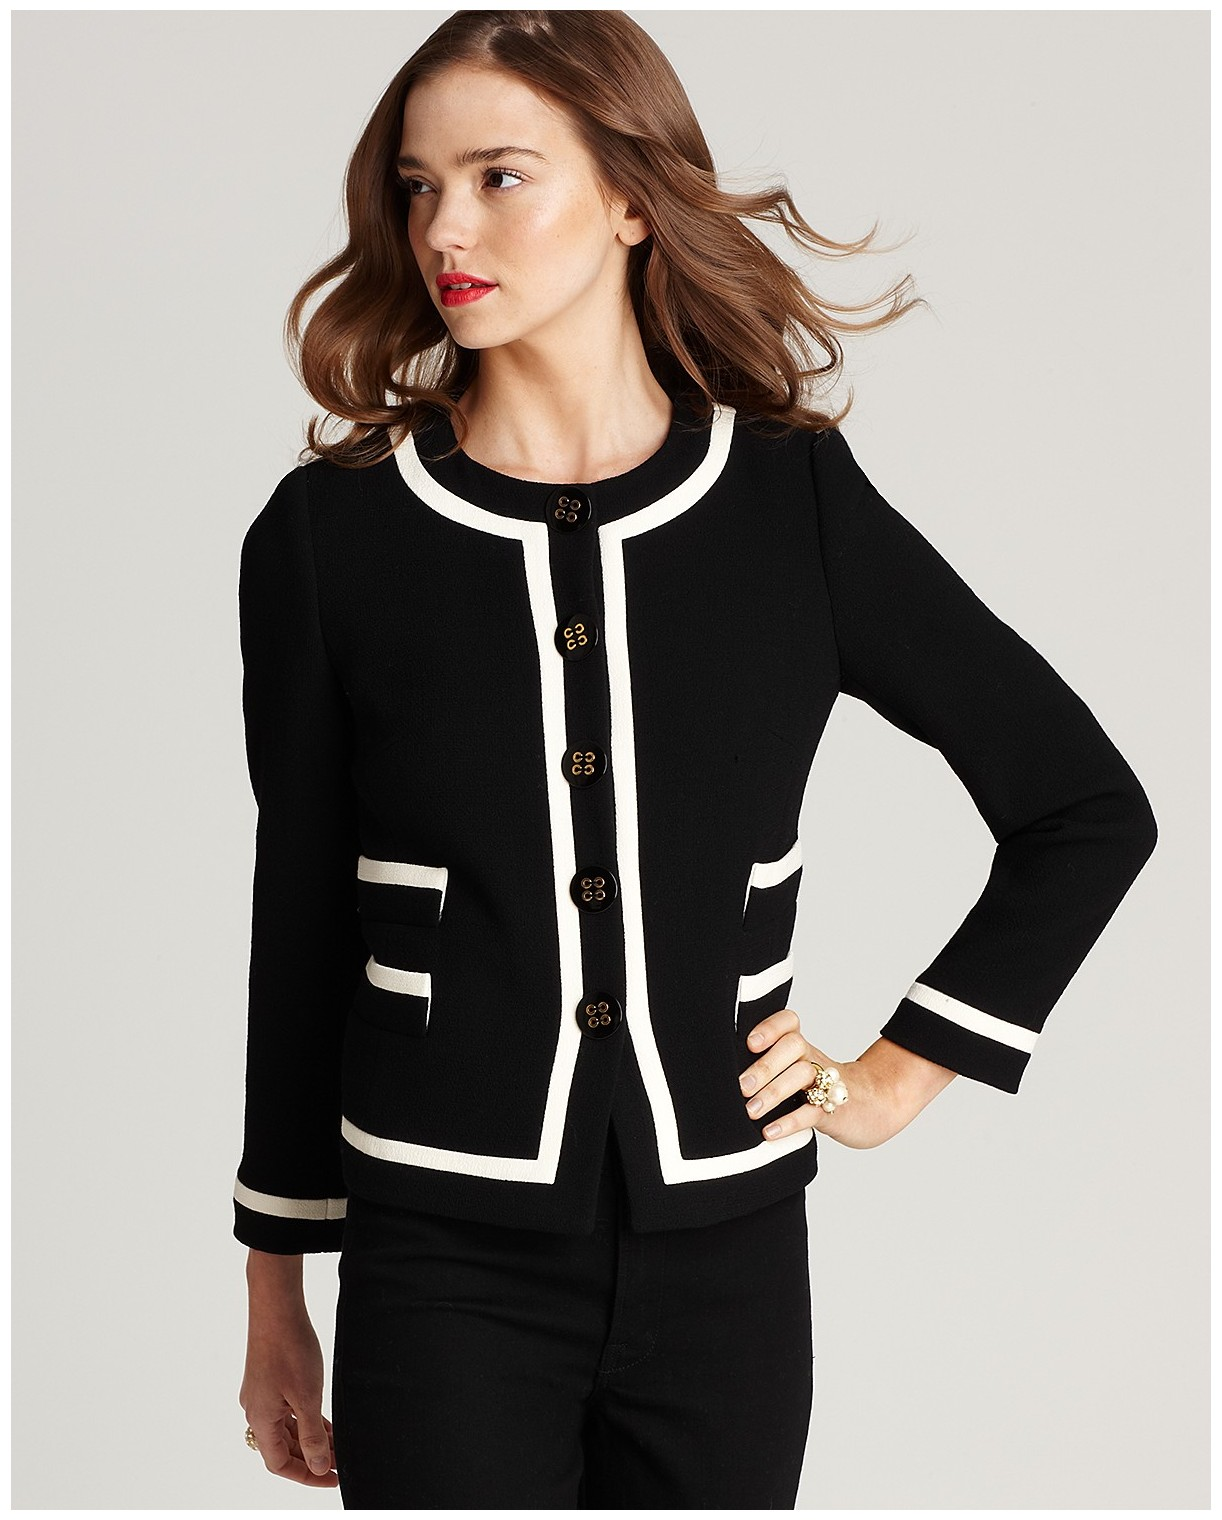 Milly Jacket